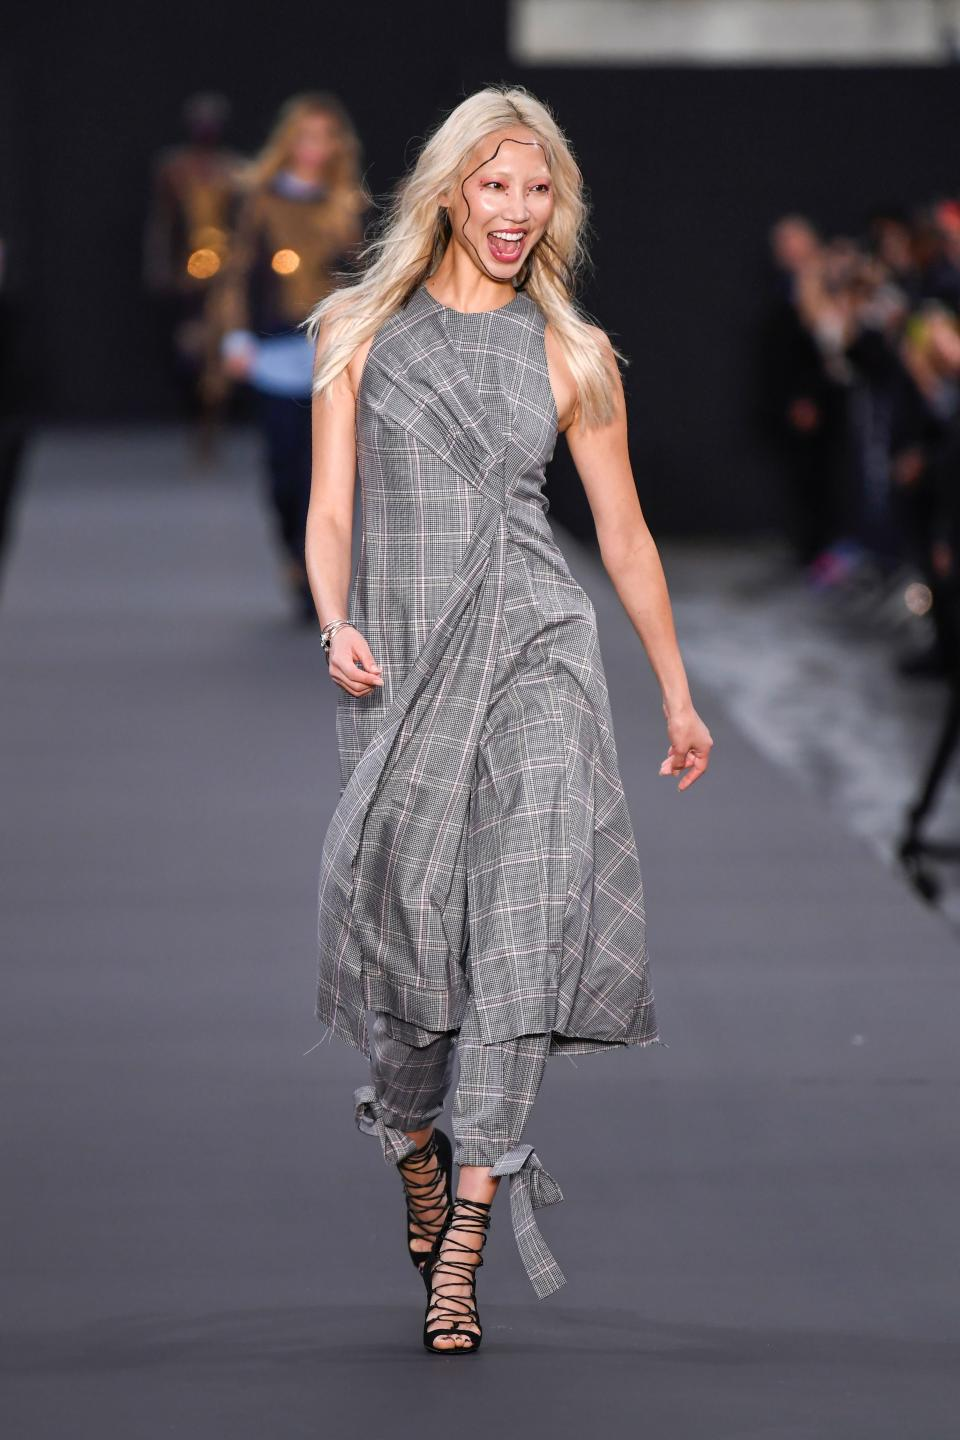 <p>The South Korean model was pictured having a laugh as she strutted her stuff. (Photo: Getty Images) </p>